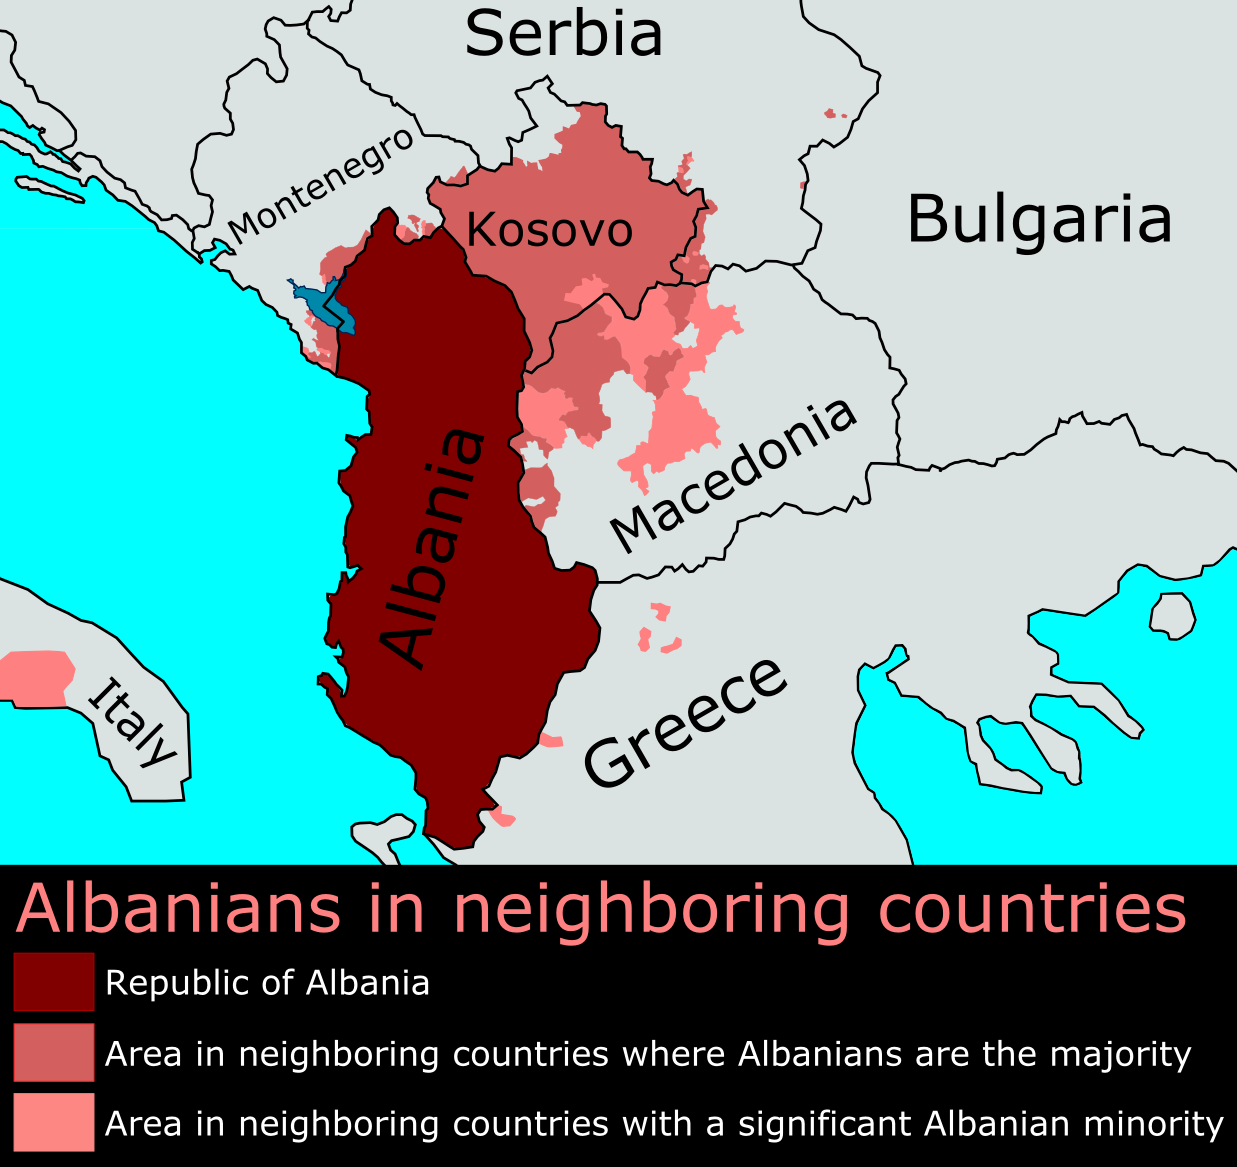 Opinion: The Balkans – The Clash Of Interests Which Could Lead To War